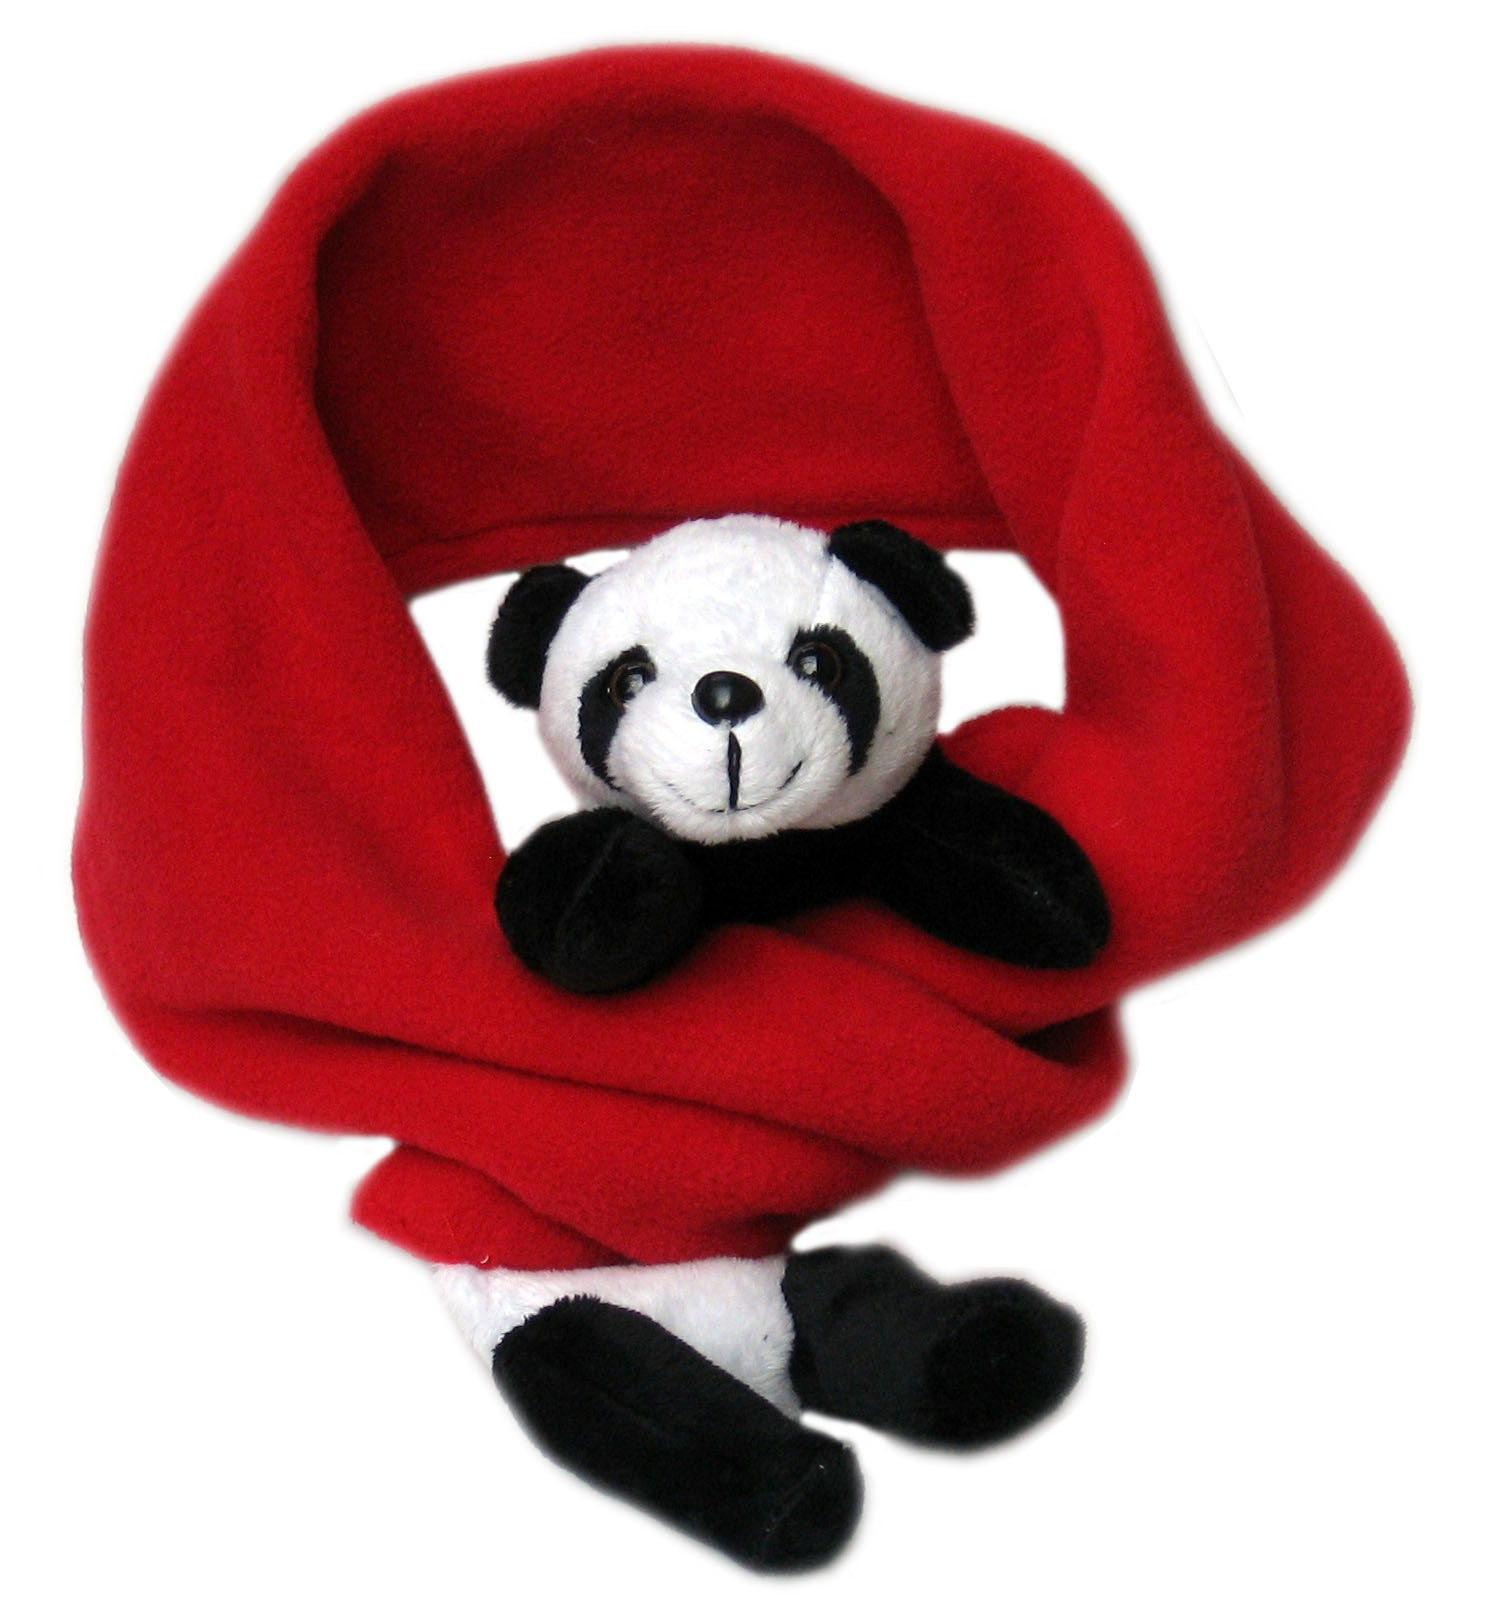 Panda on Red Fleece Buddy Scarf